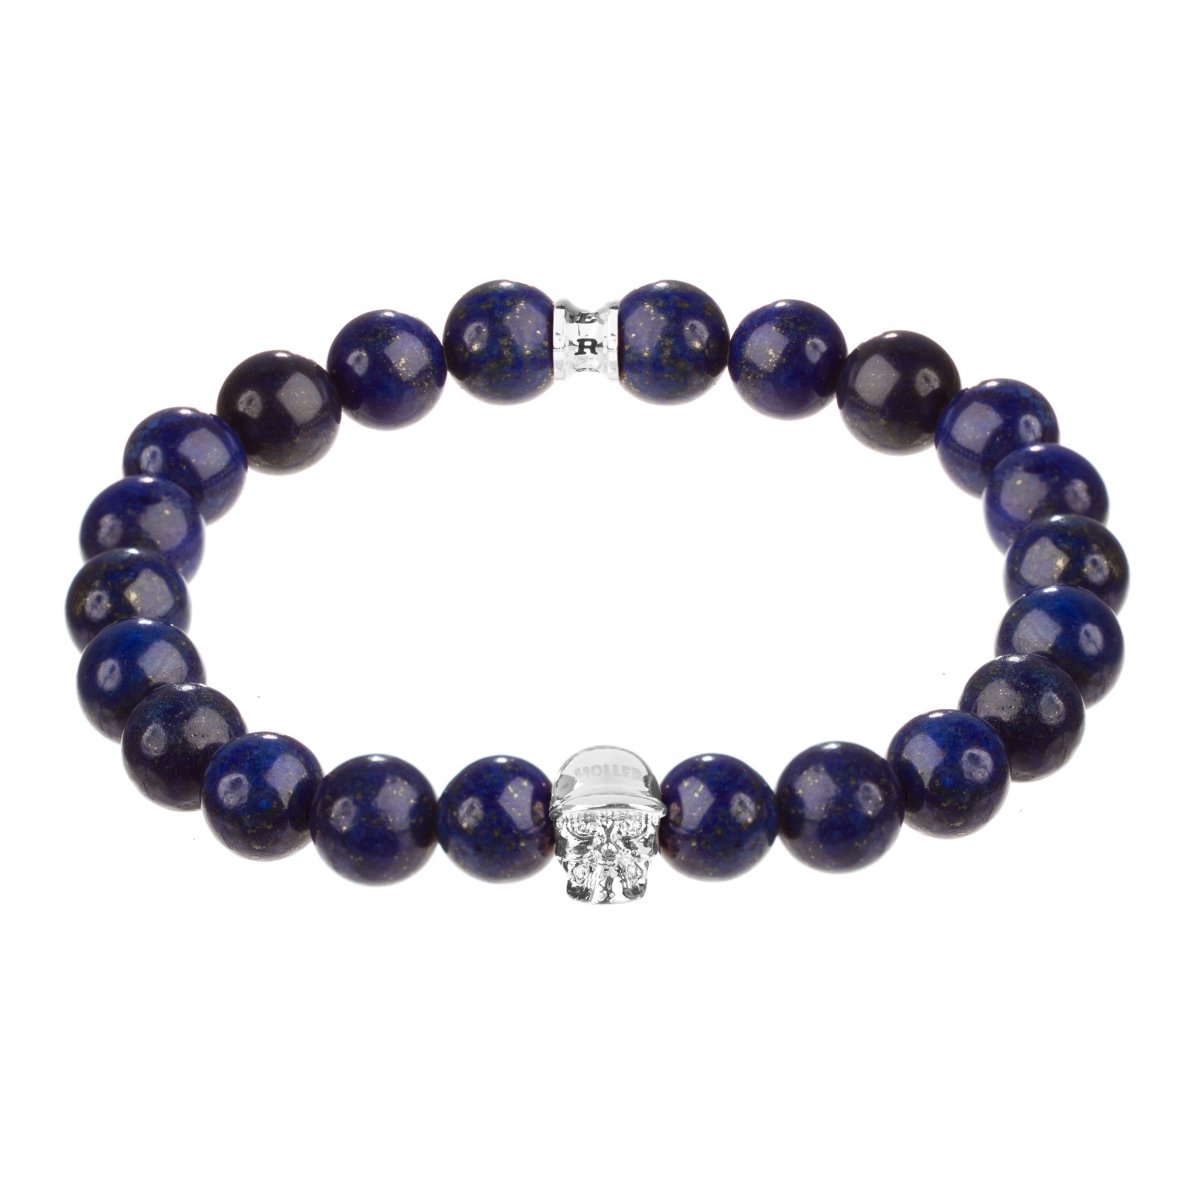 Jefferson Silver Polished Skull / 10mm Blue Gold Dumortierite Natural Stone Bracelet